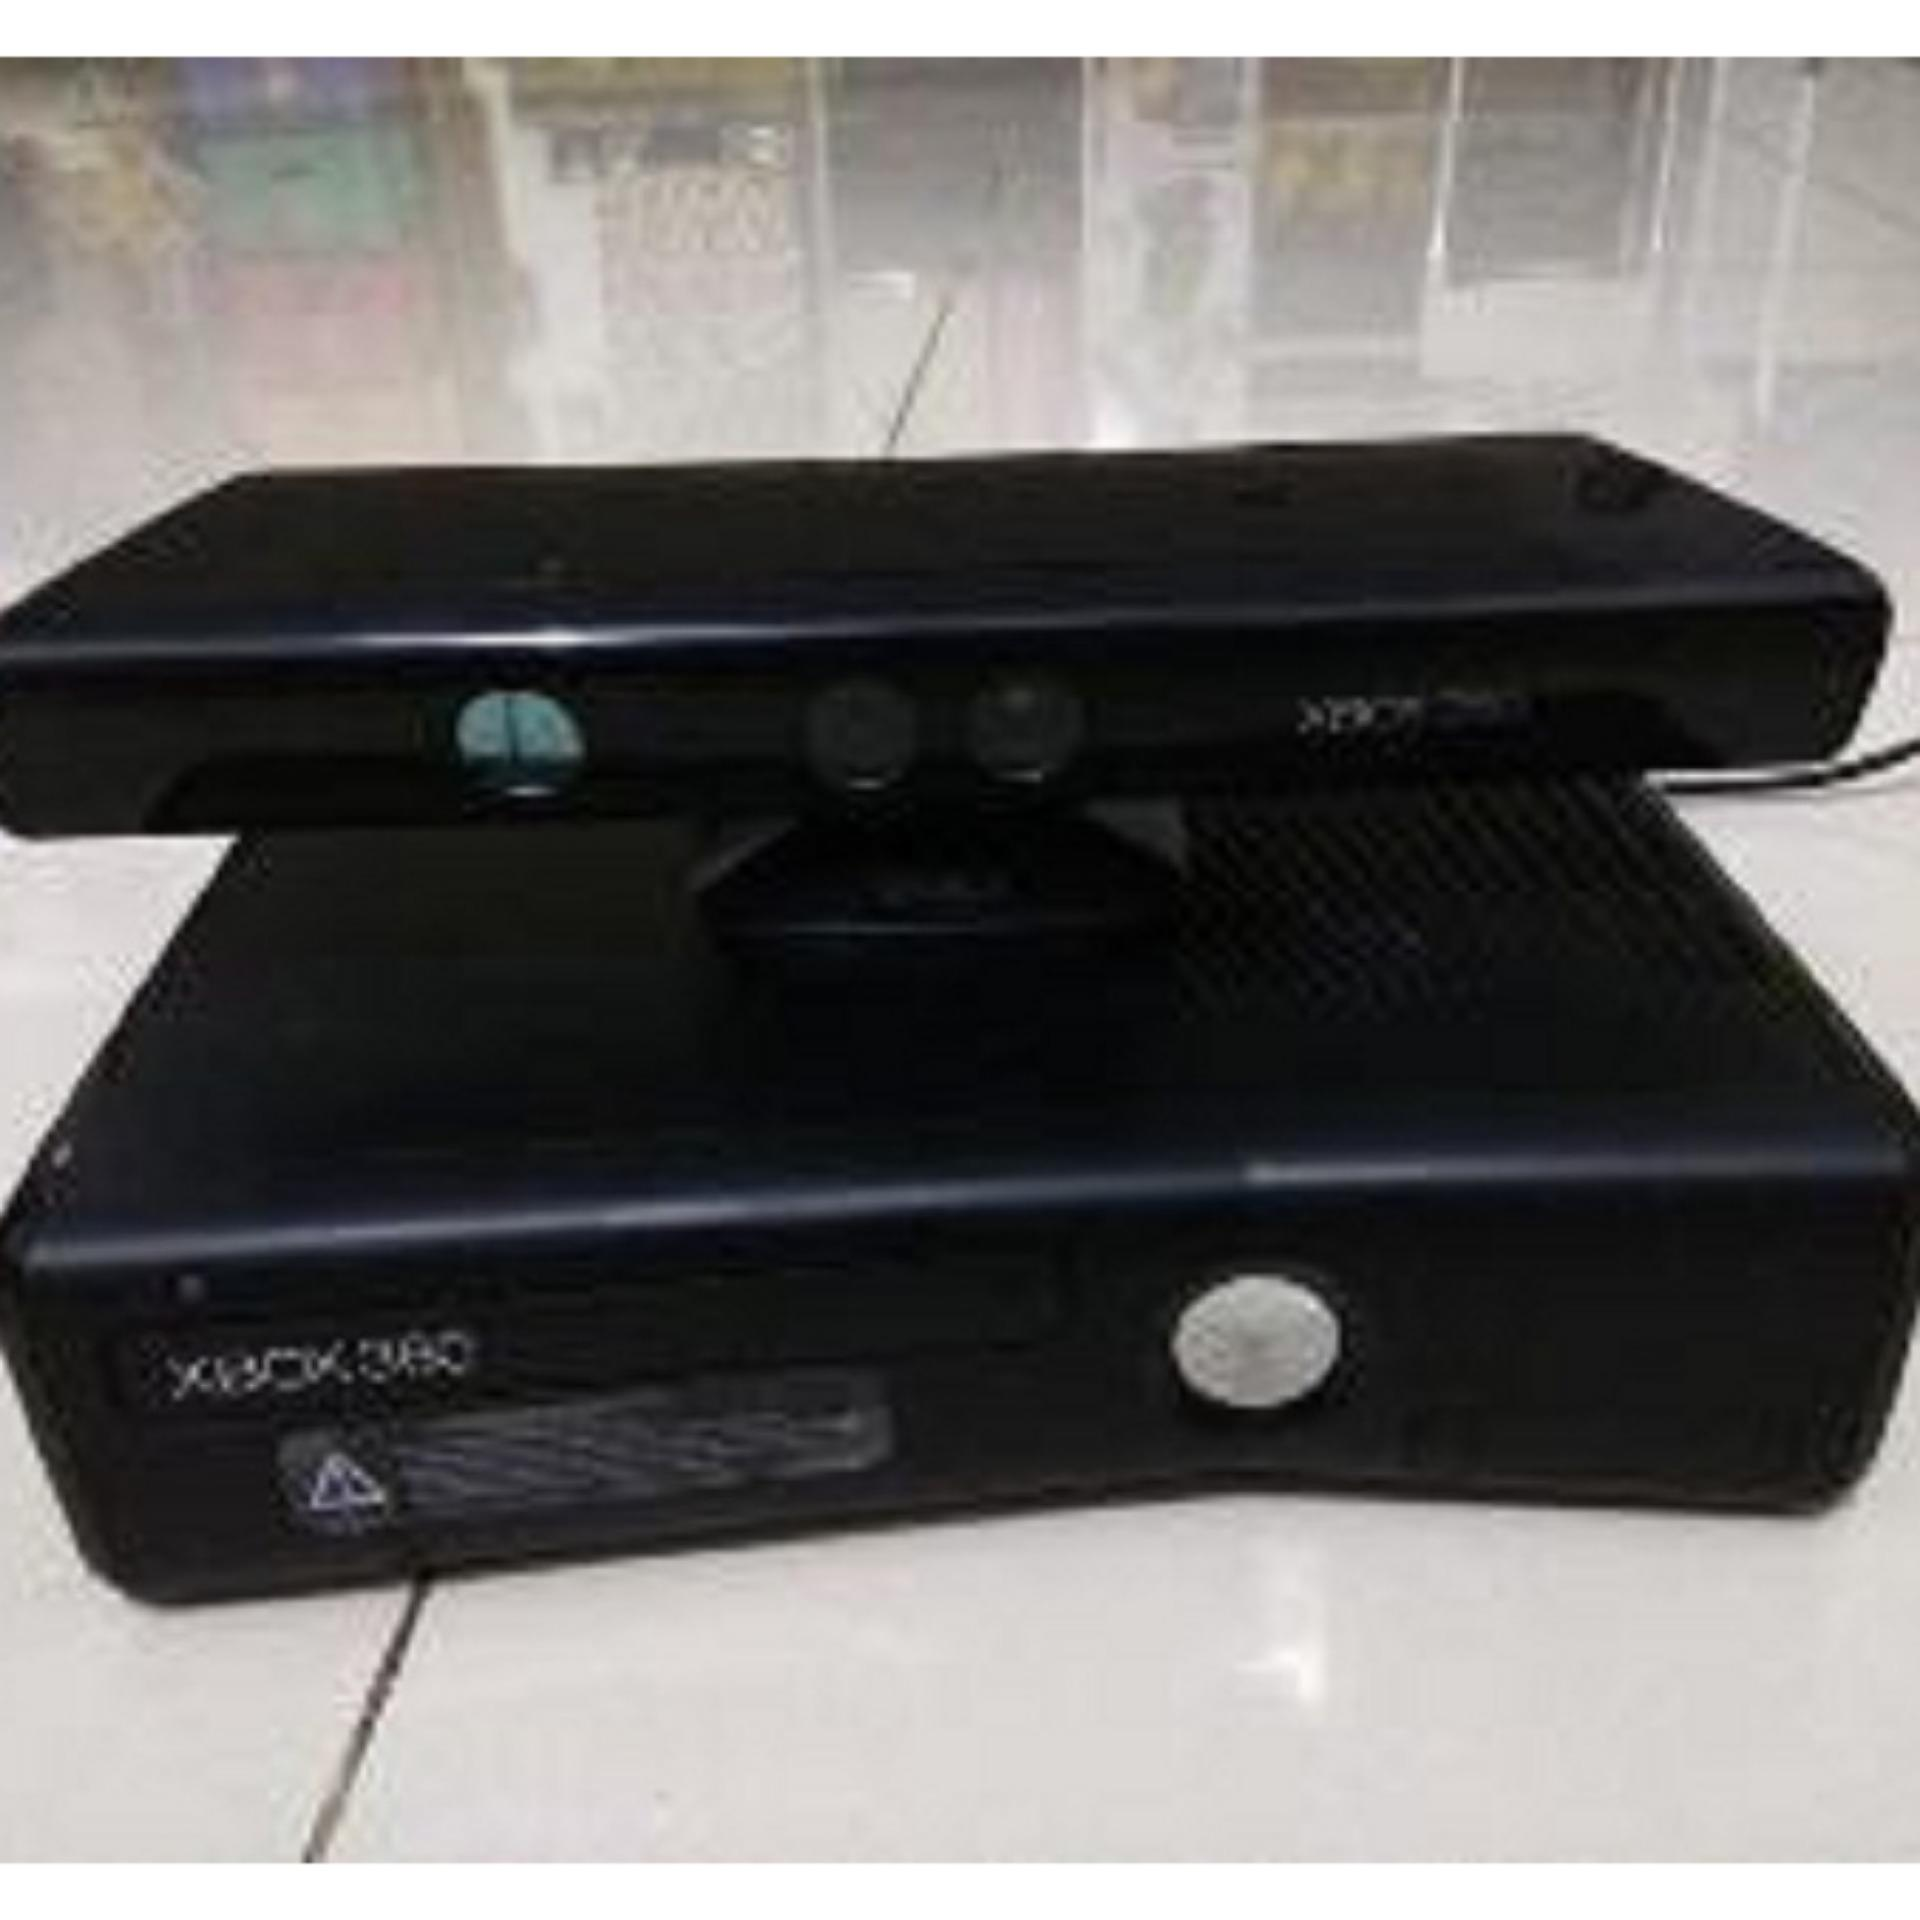 PLAYSTATION 3 SLIM 500 GB CFW BISA REQUEST GAME. Source · xbox .